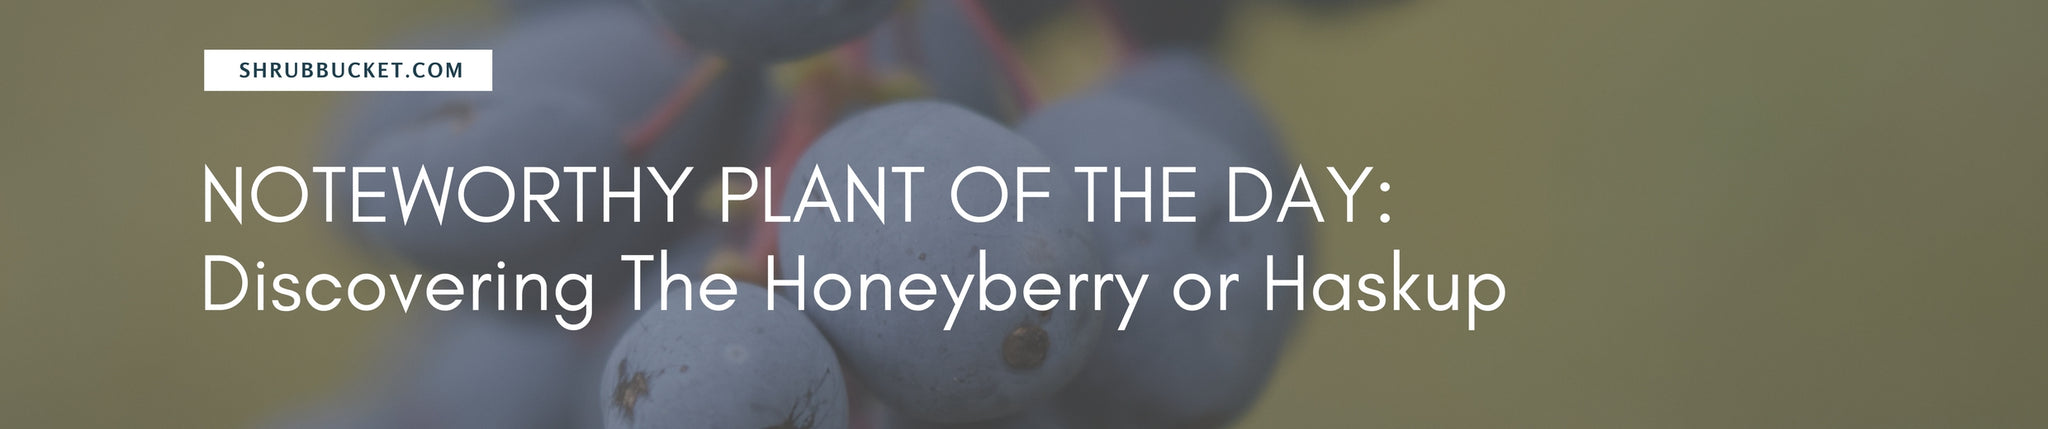 Discovering The Honeyberry